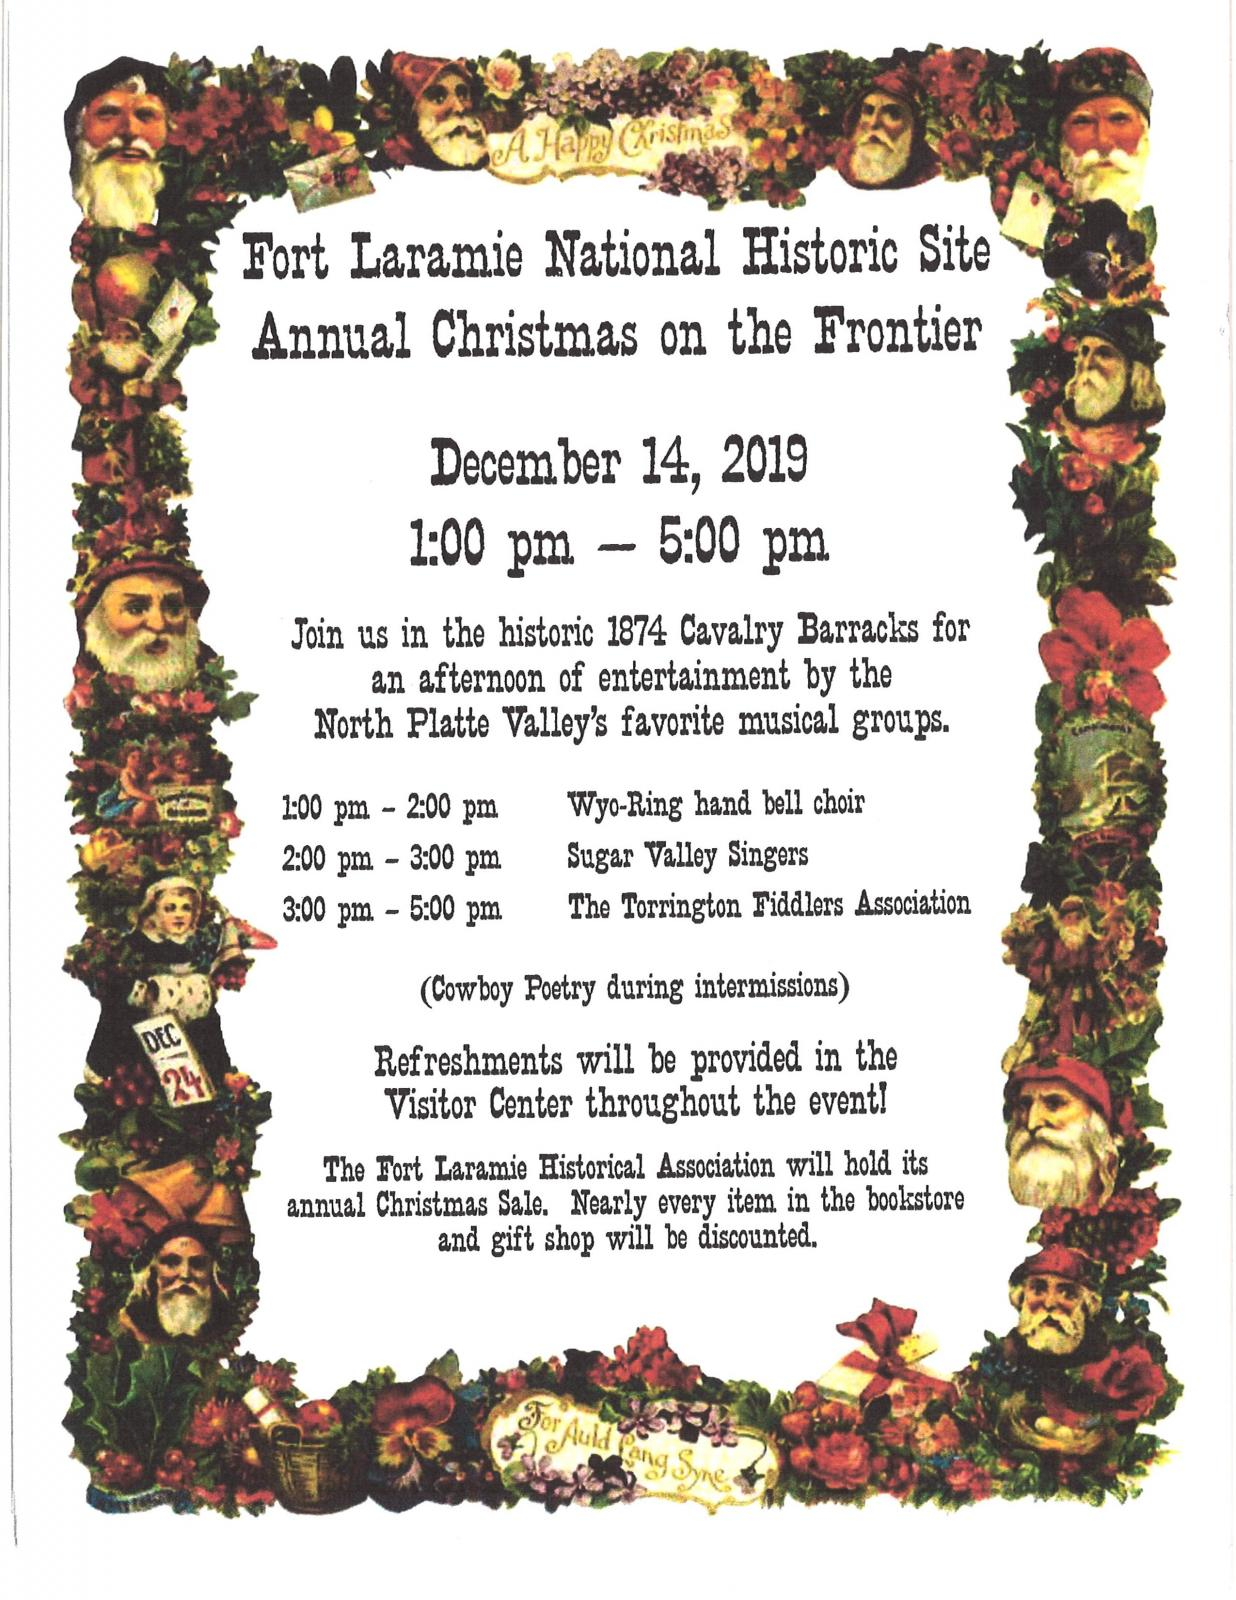 Fort Laramie National Historic Site Annual Christmas on the Frontier Photo